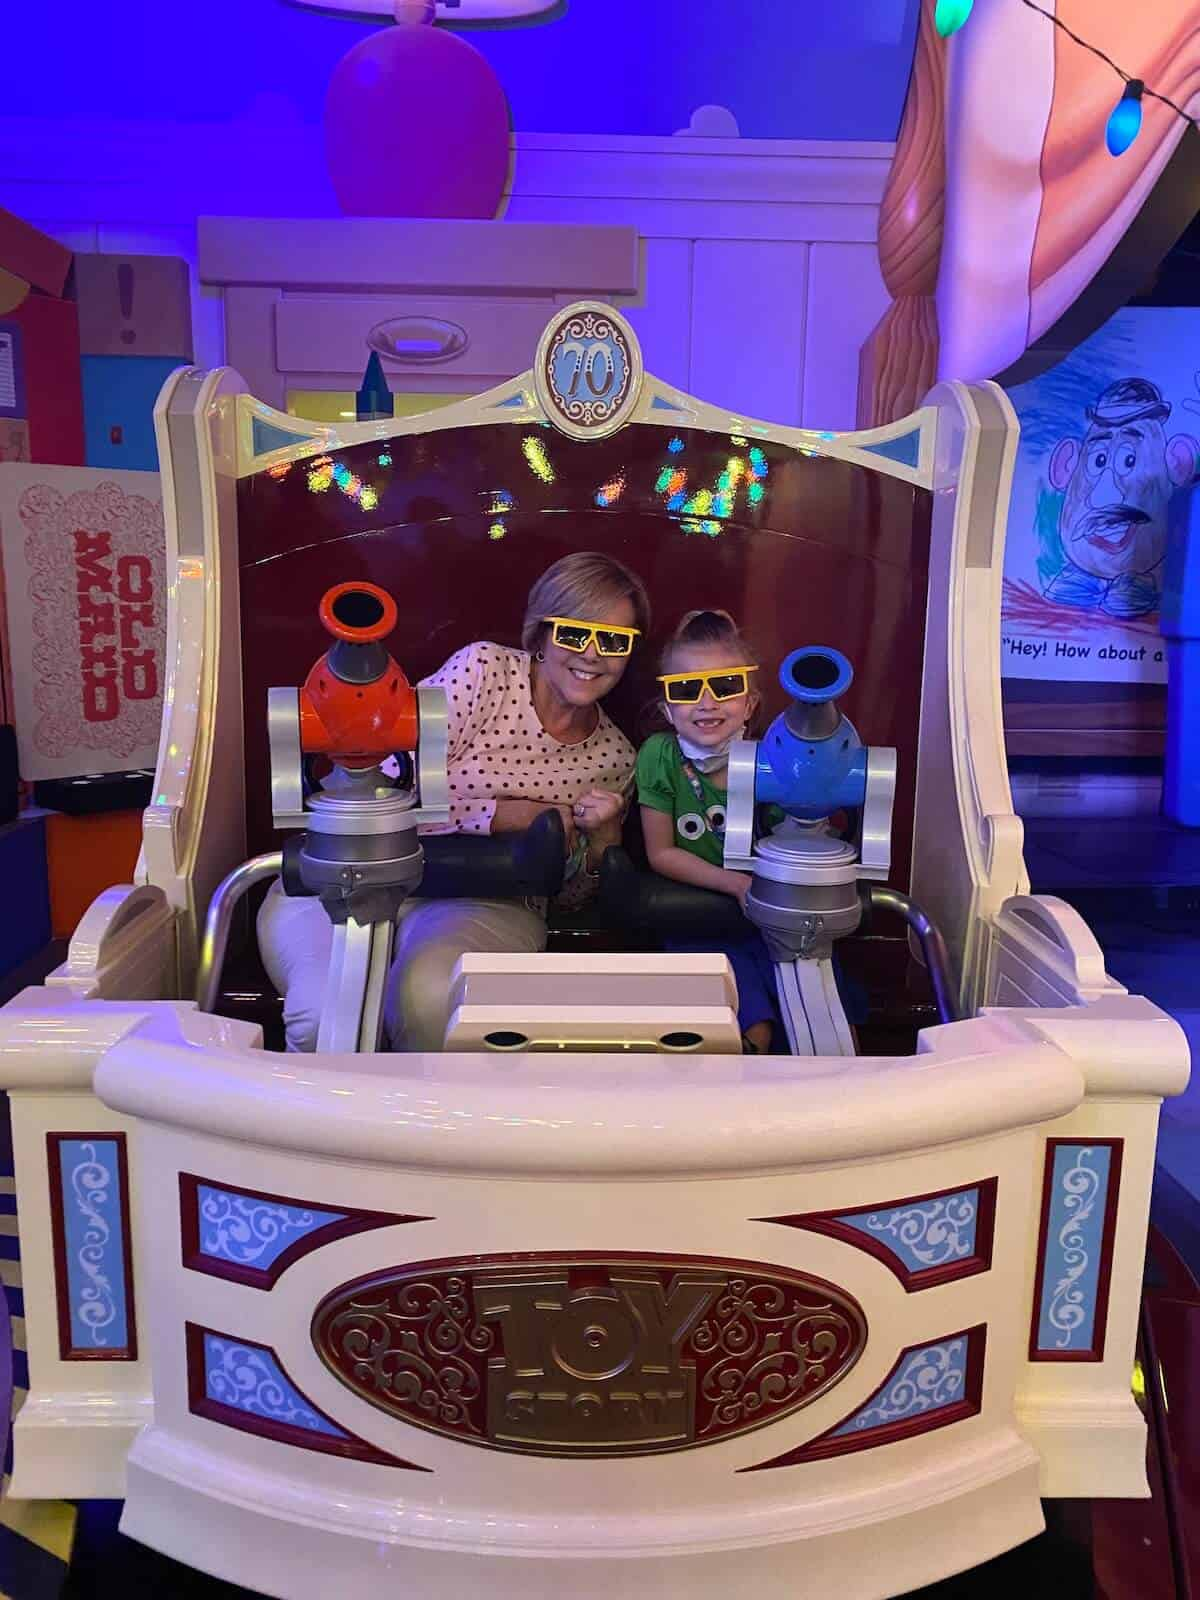 Hollywood Studios ride height requirements at Disney World